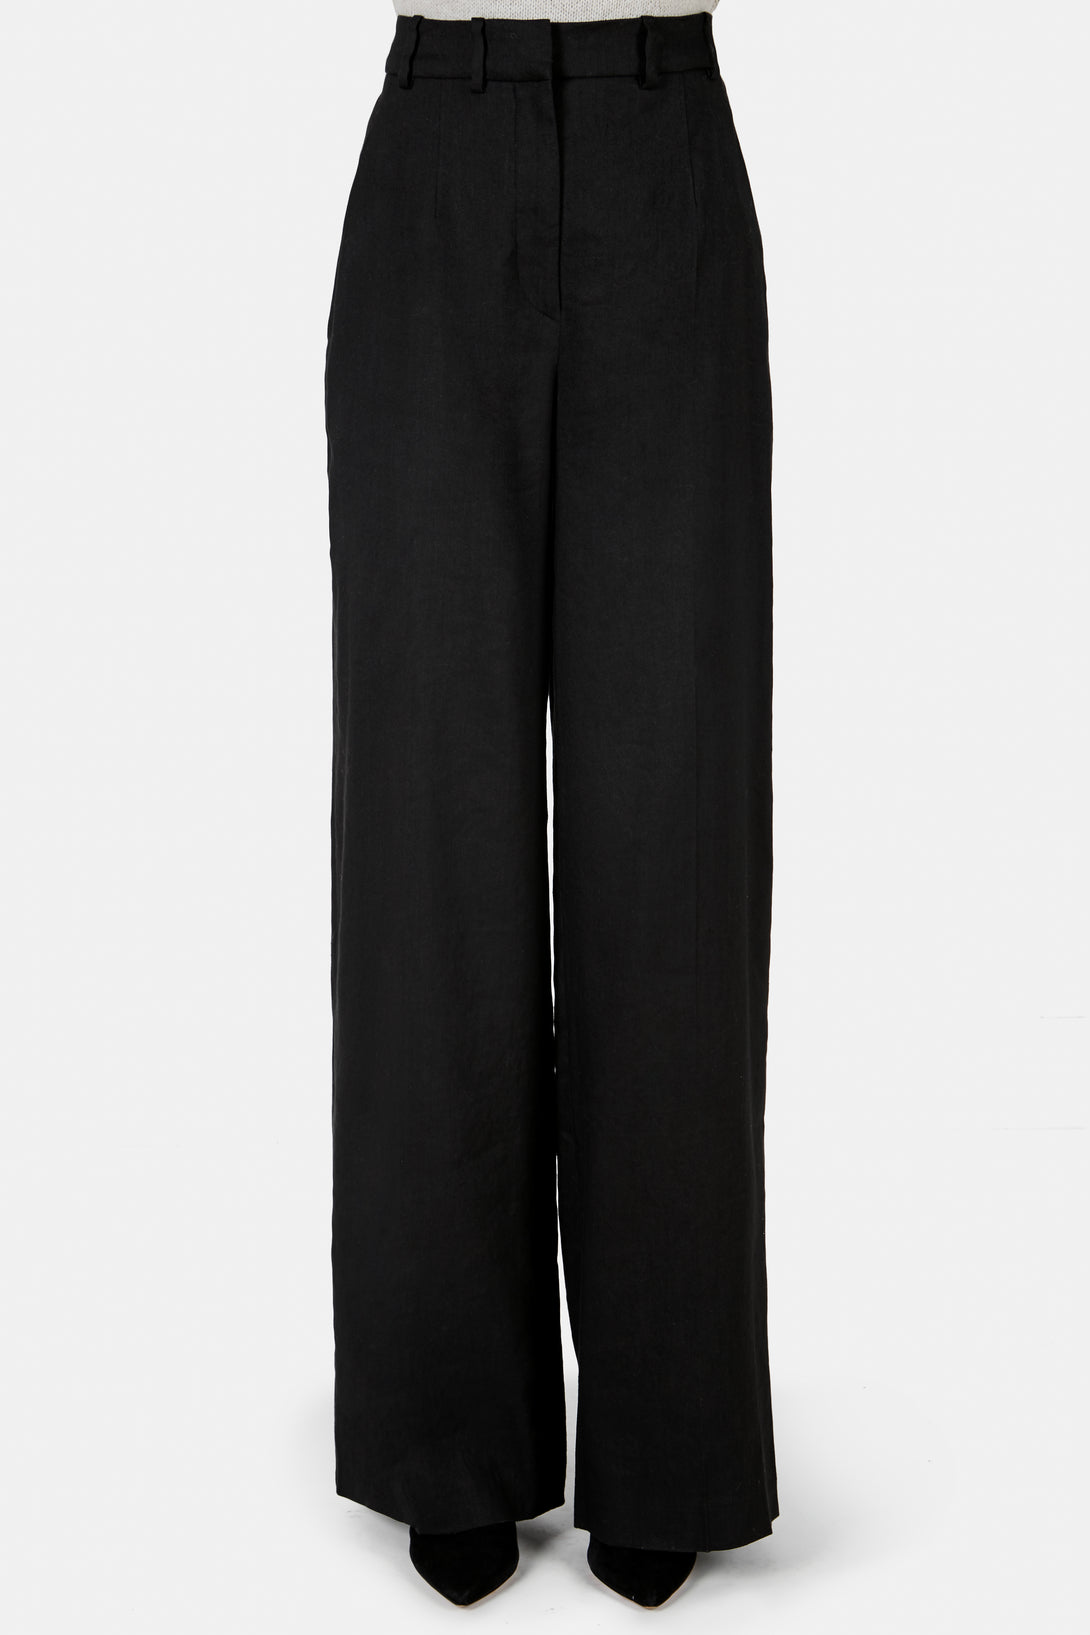 High Waisted Flared Pants with Side Slash Pockets - Black